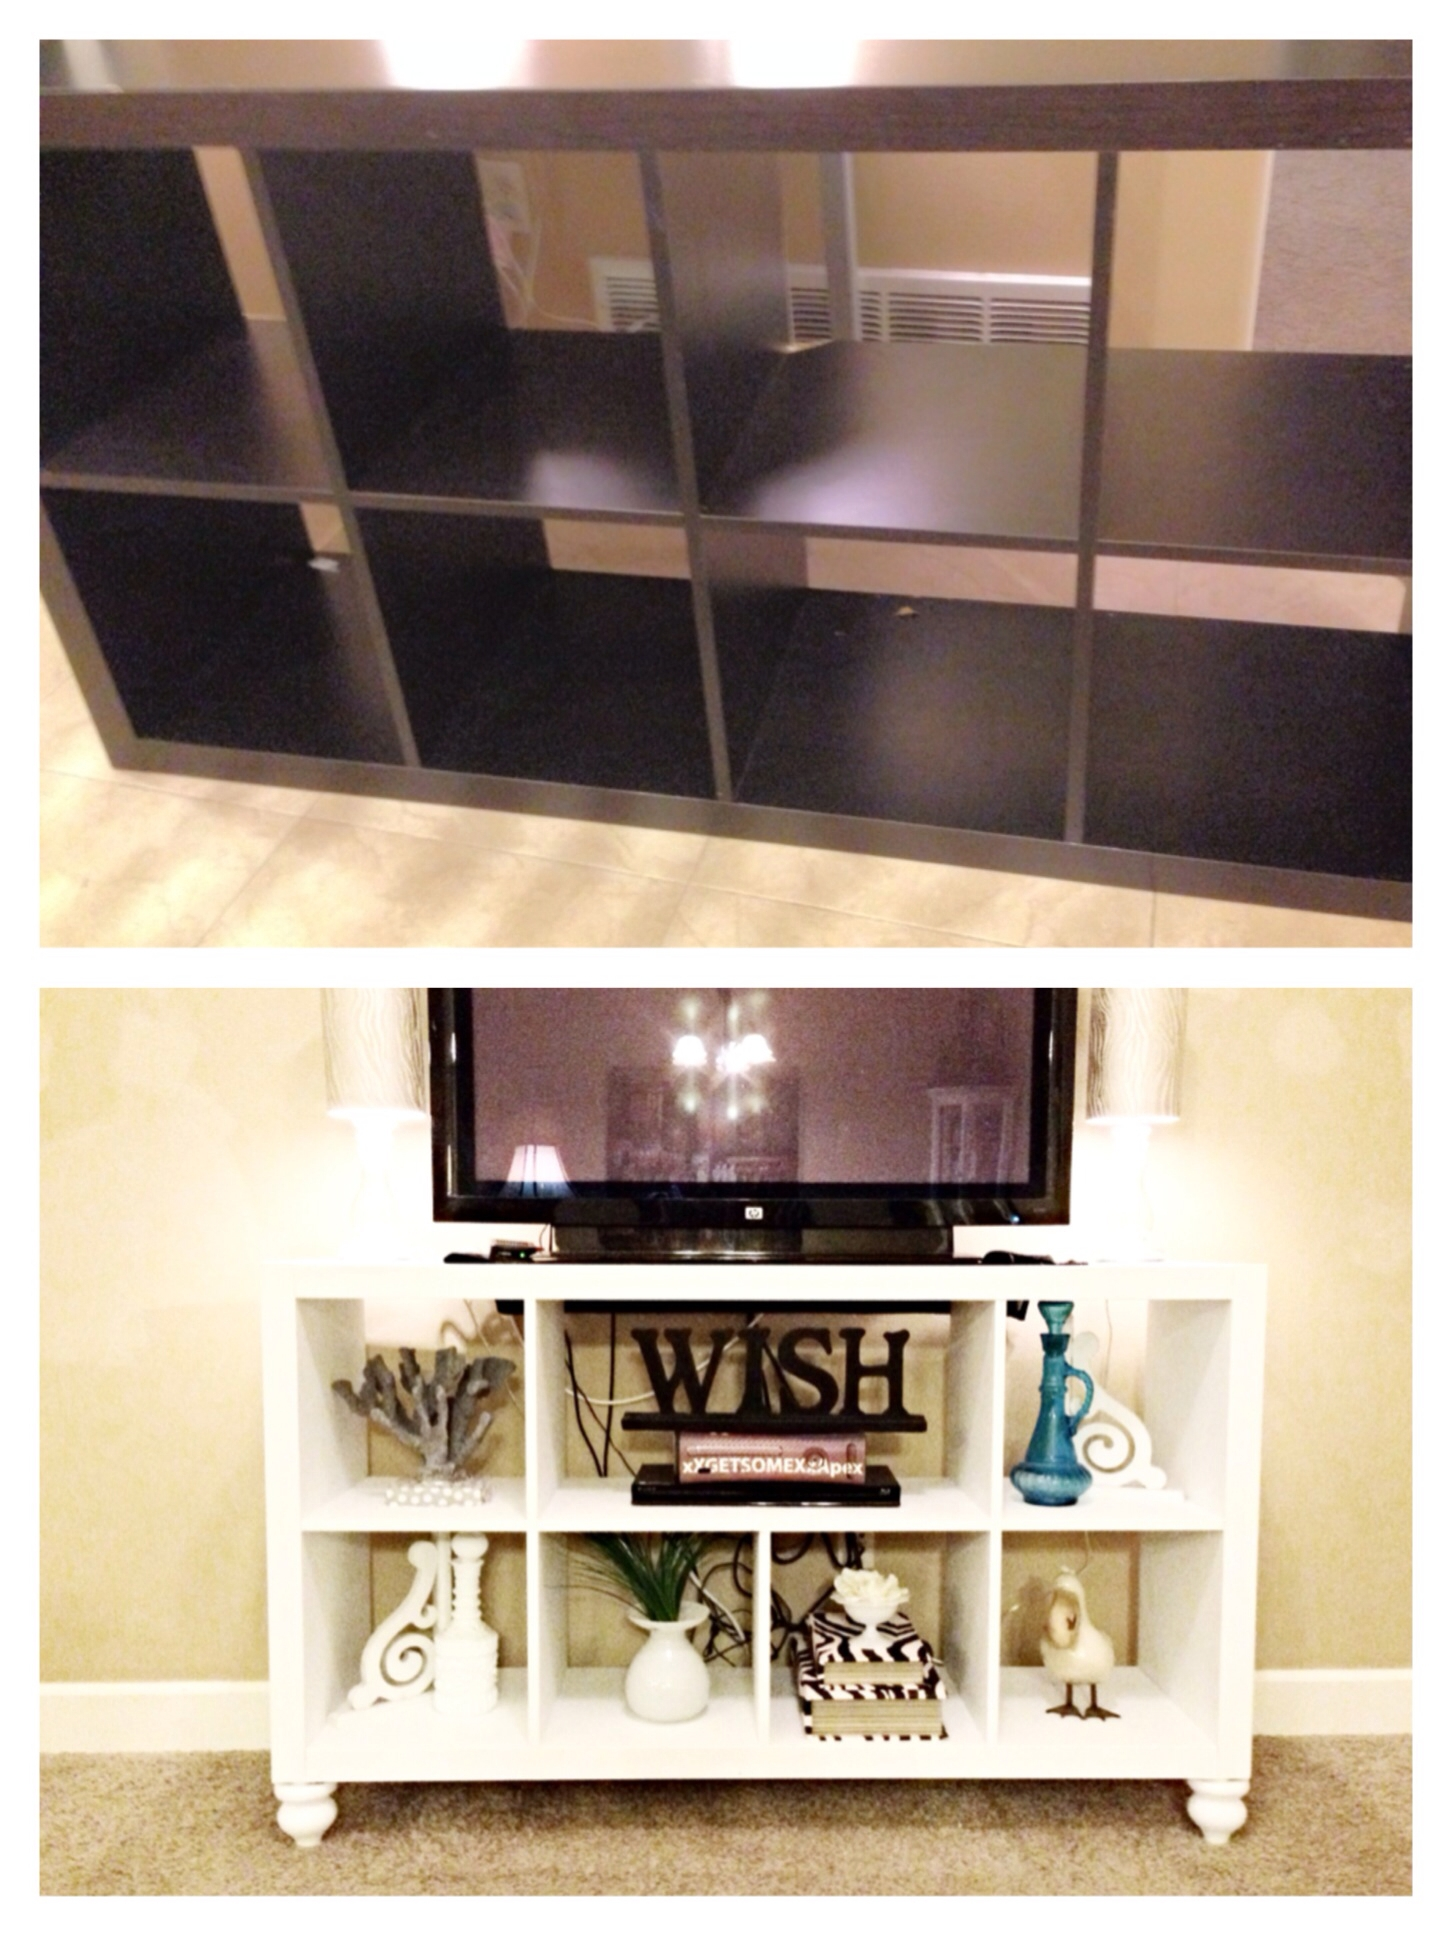 Diy Ikea Bookshelf To Tv Stand Ill Do It Myself Pinterest With Regard To Bookcase With Tv Stand (View 5 of 15)